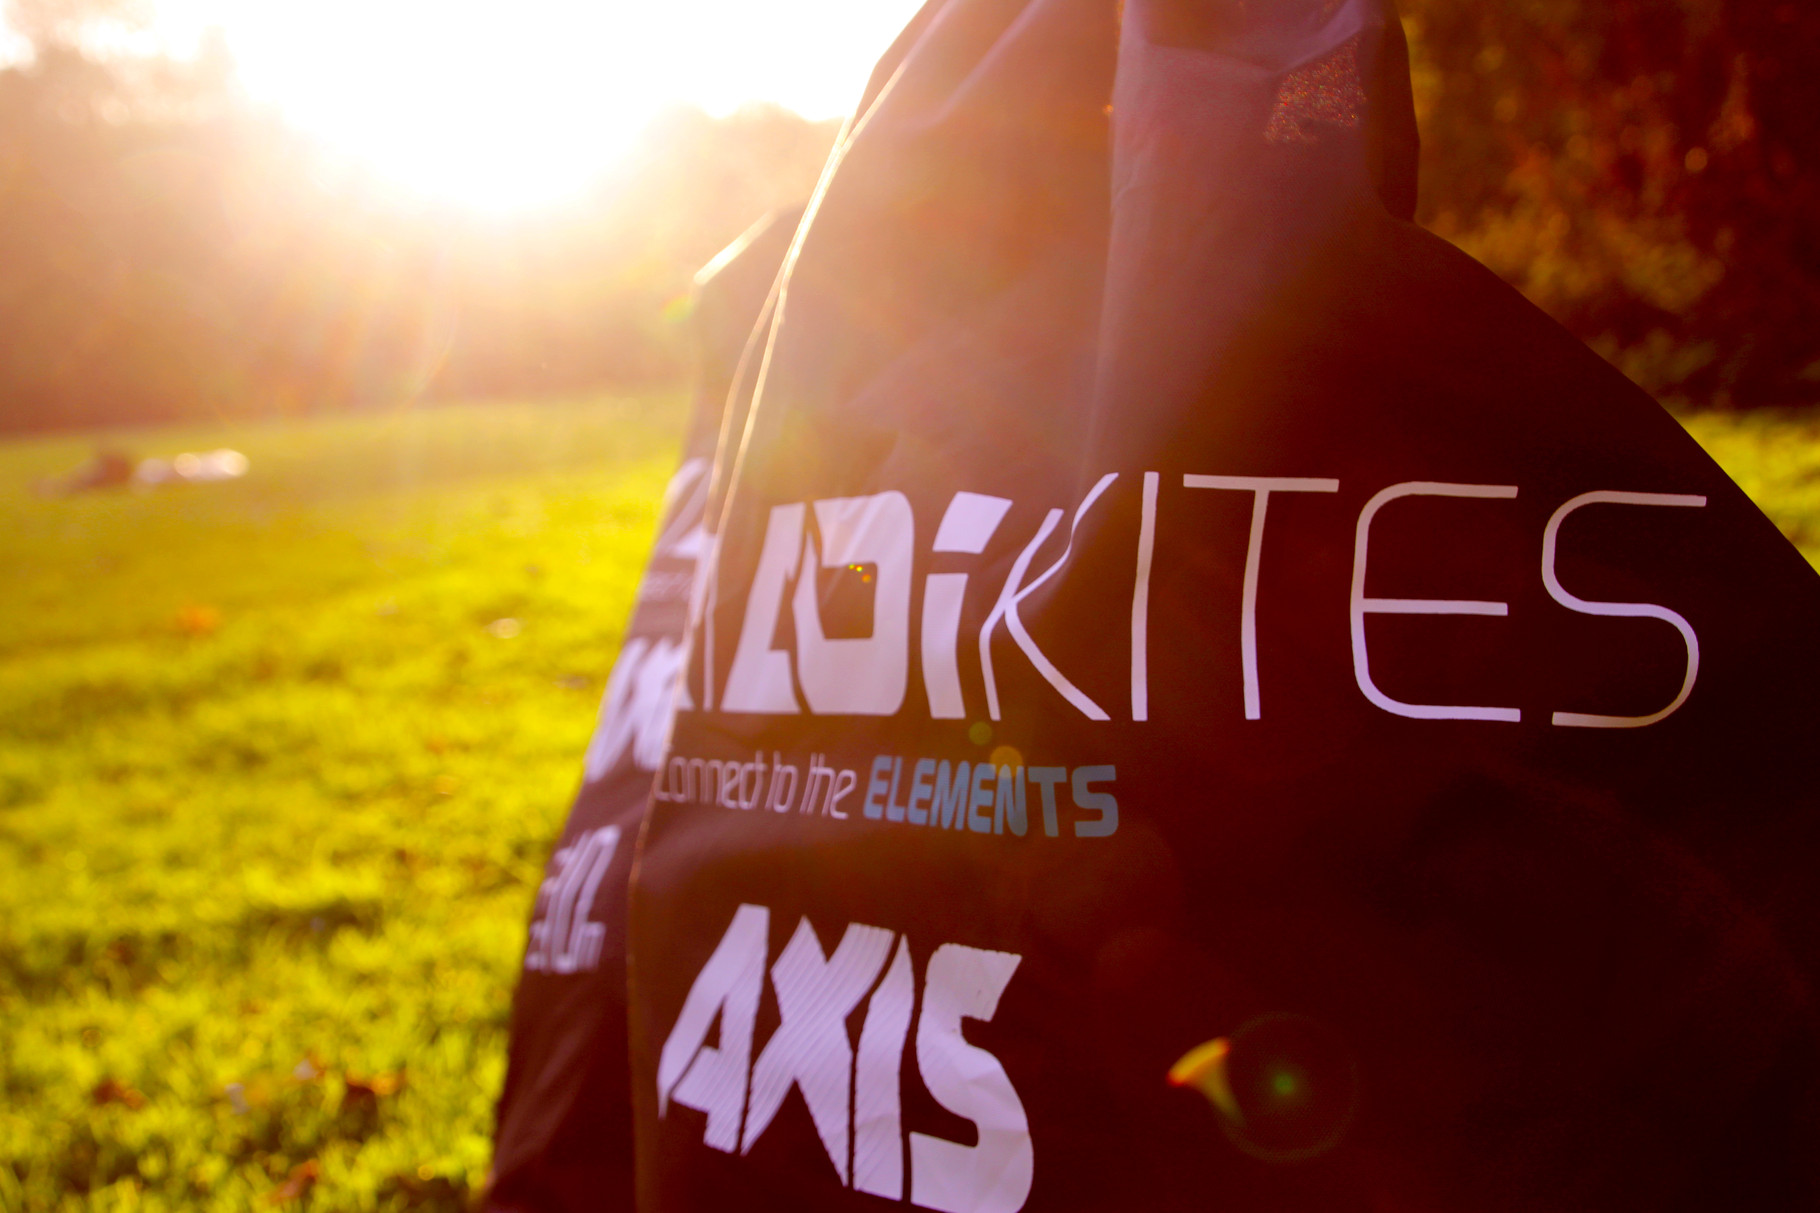 ADI kites - kite bag 2015